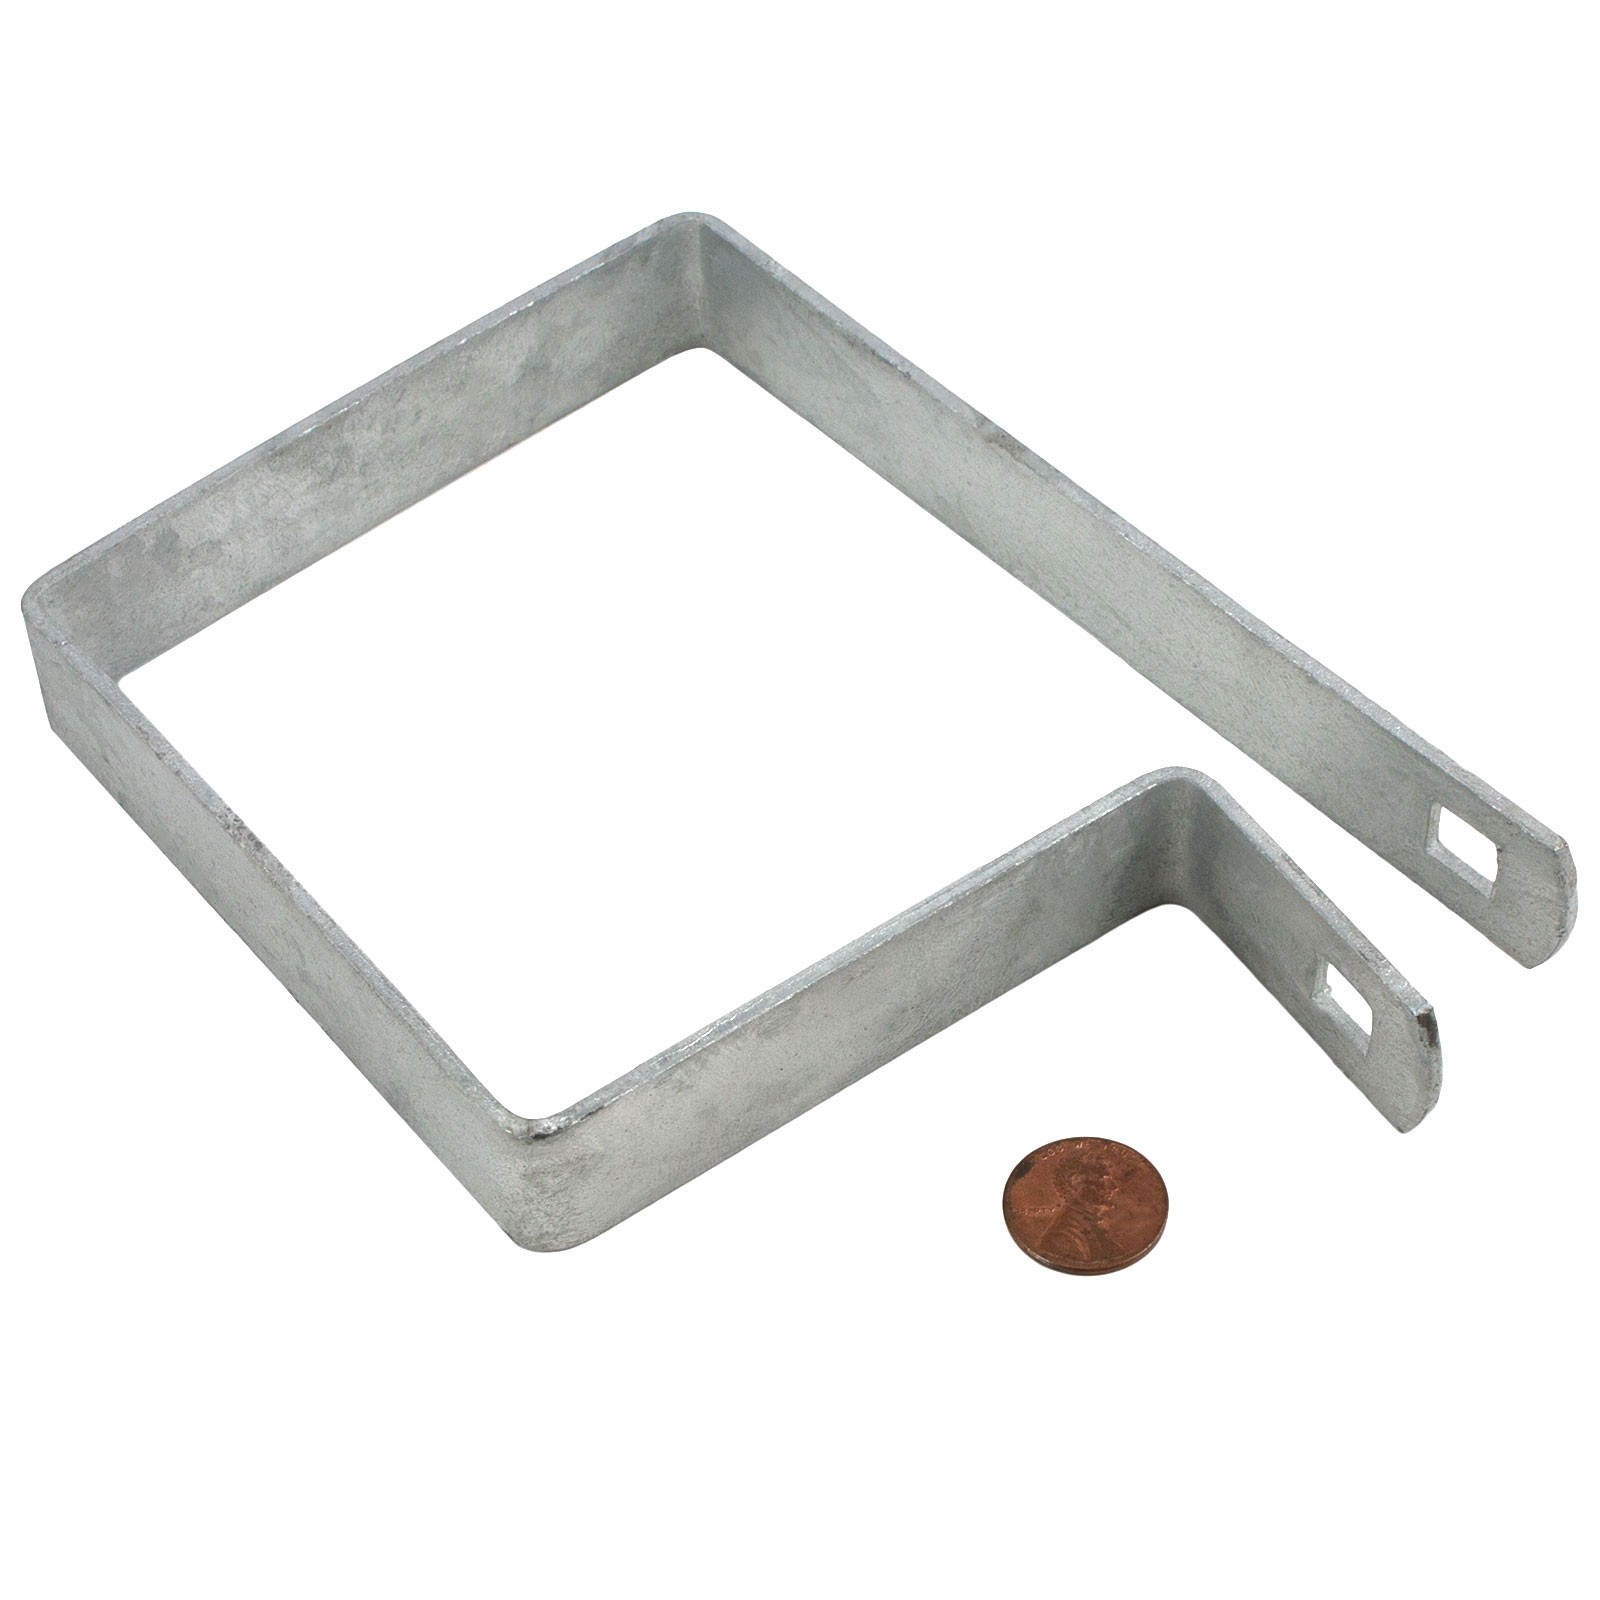 4 Quot Square Tension Band Chain Link 7 8 Quot Galvanized Steel